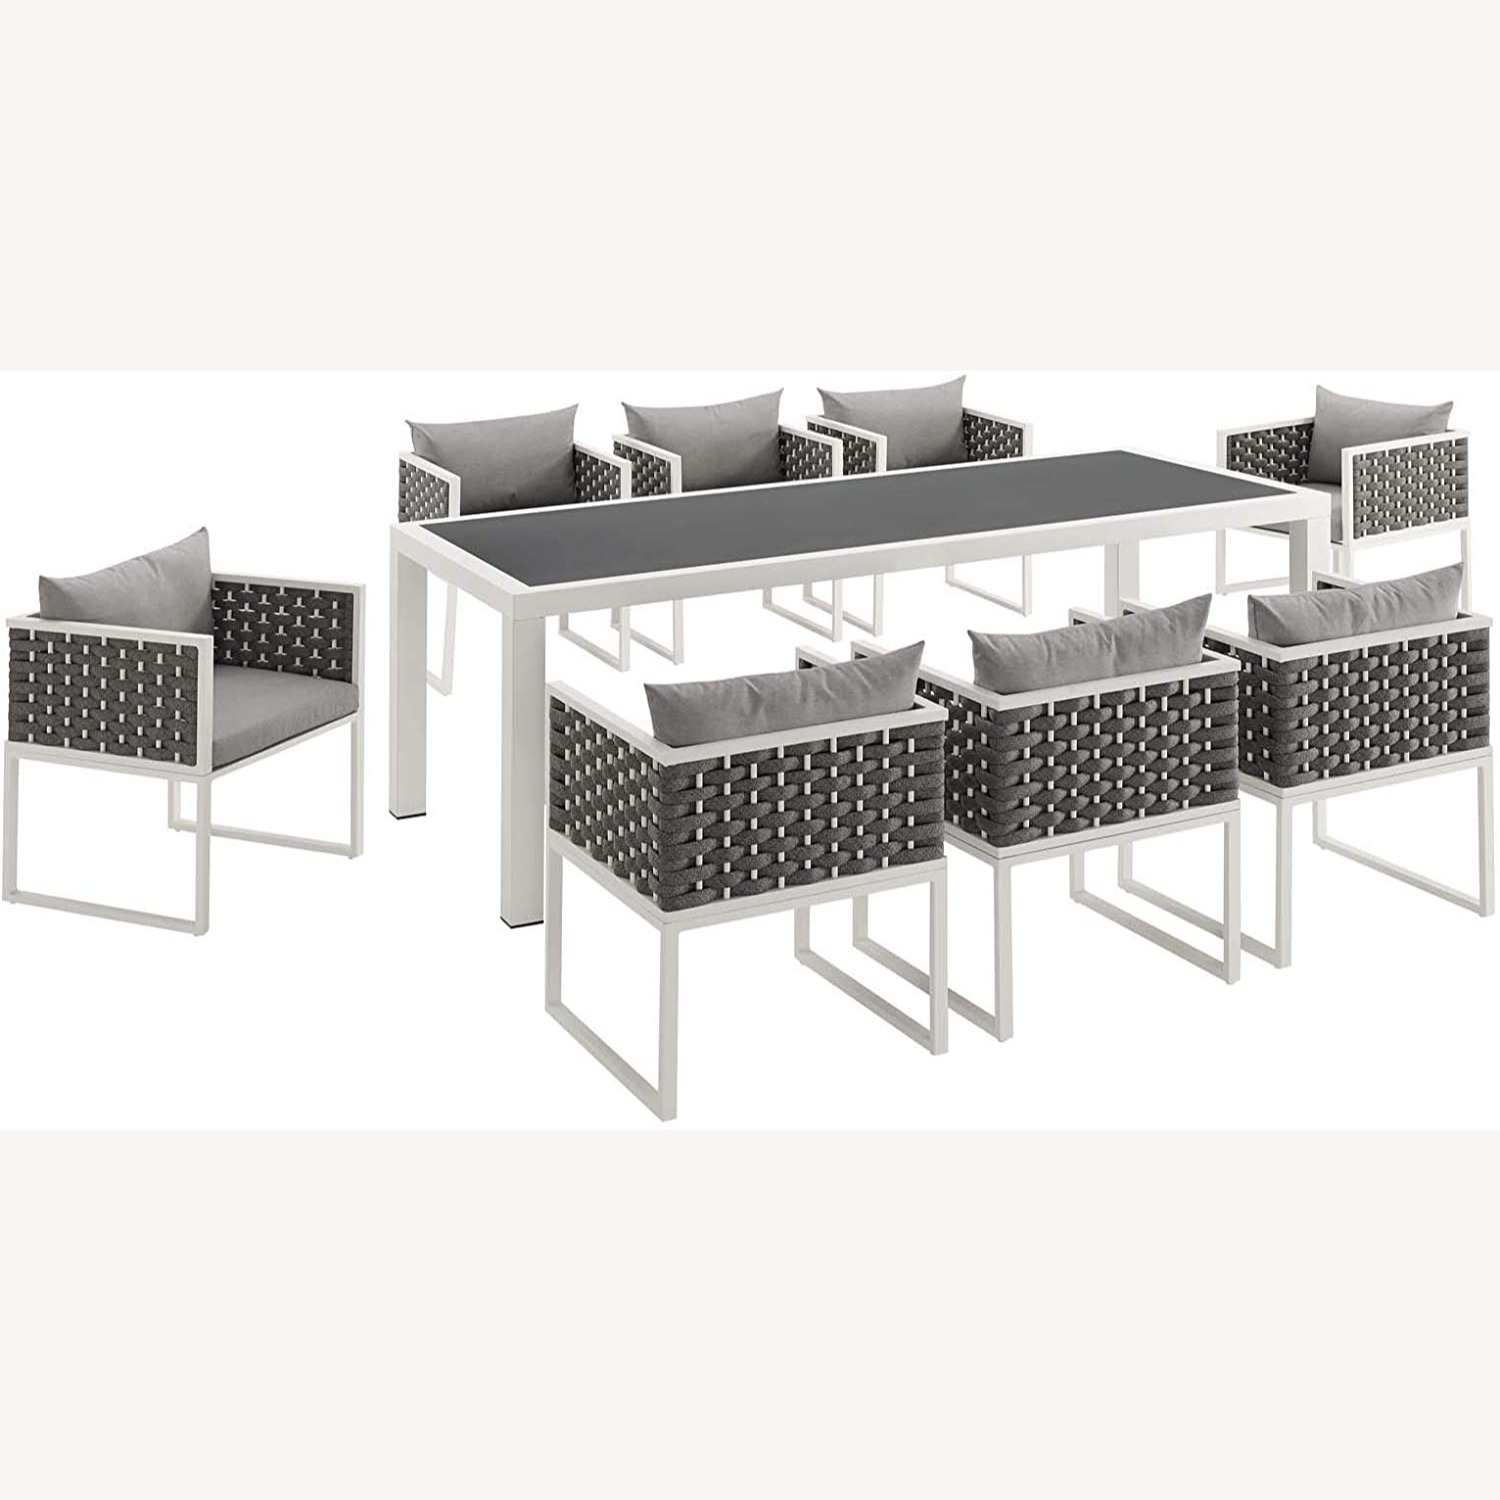 Modern 9-Piece Patio Dining Set In White & Gray - image-1